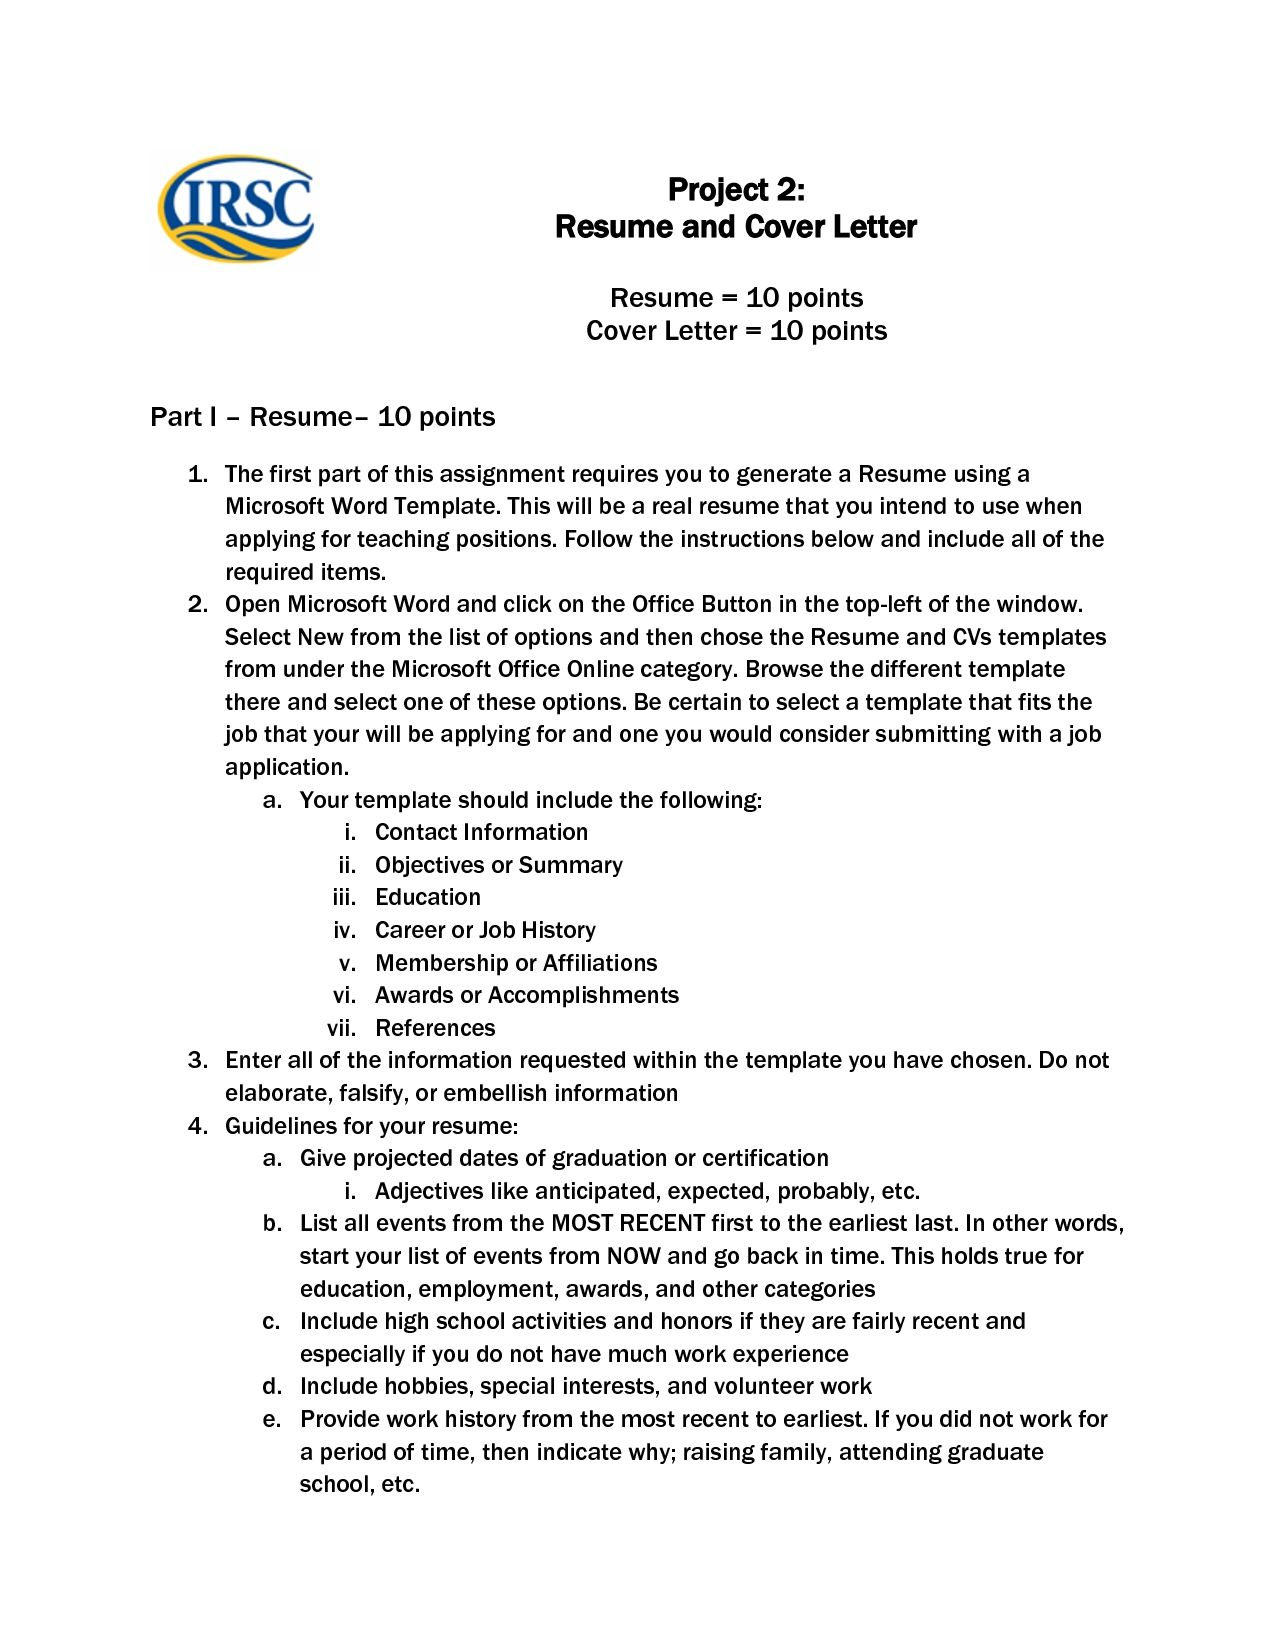 Resume And Cover Letter Template Microsoft Word Resume